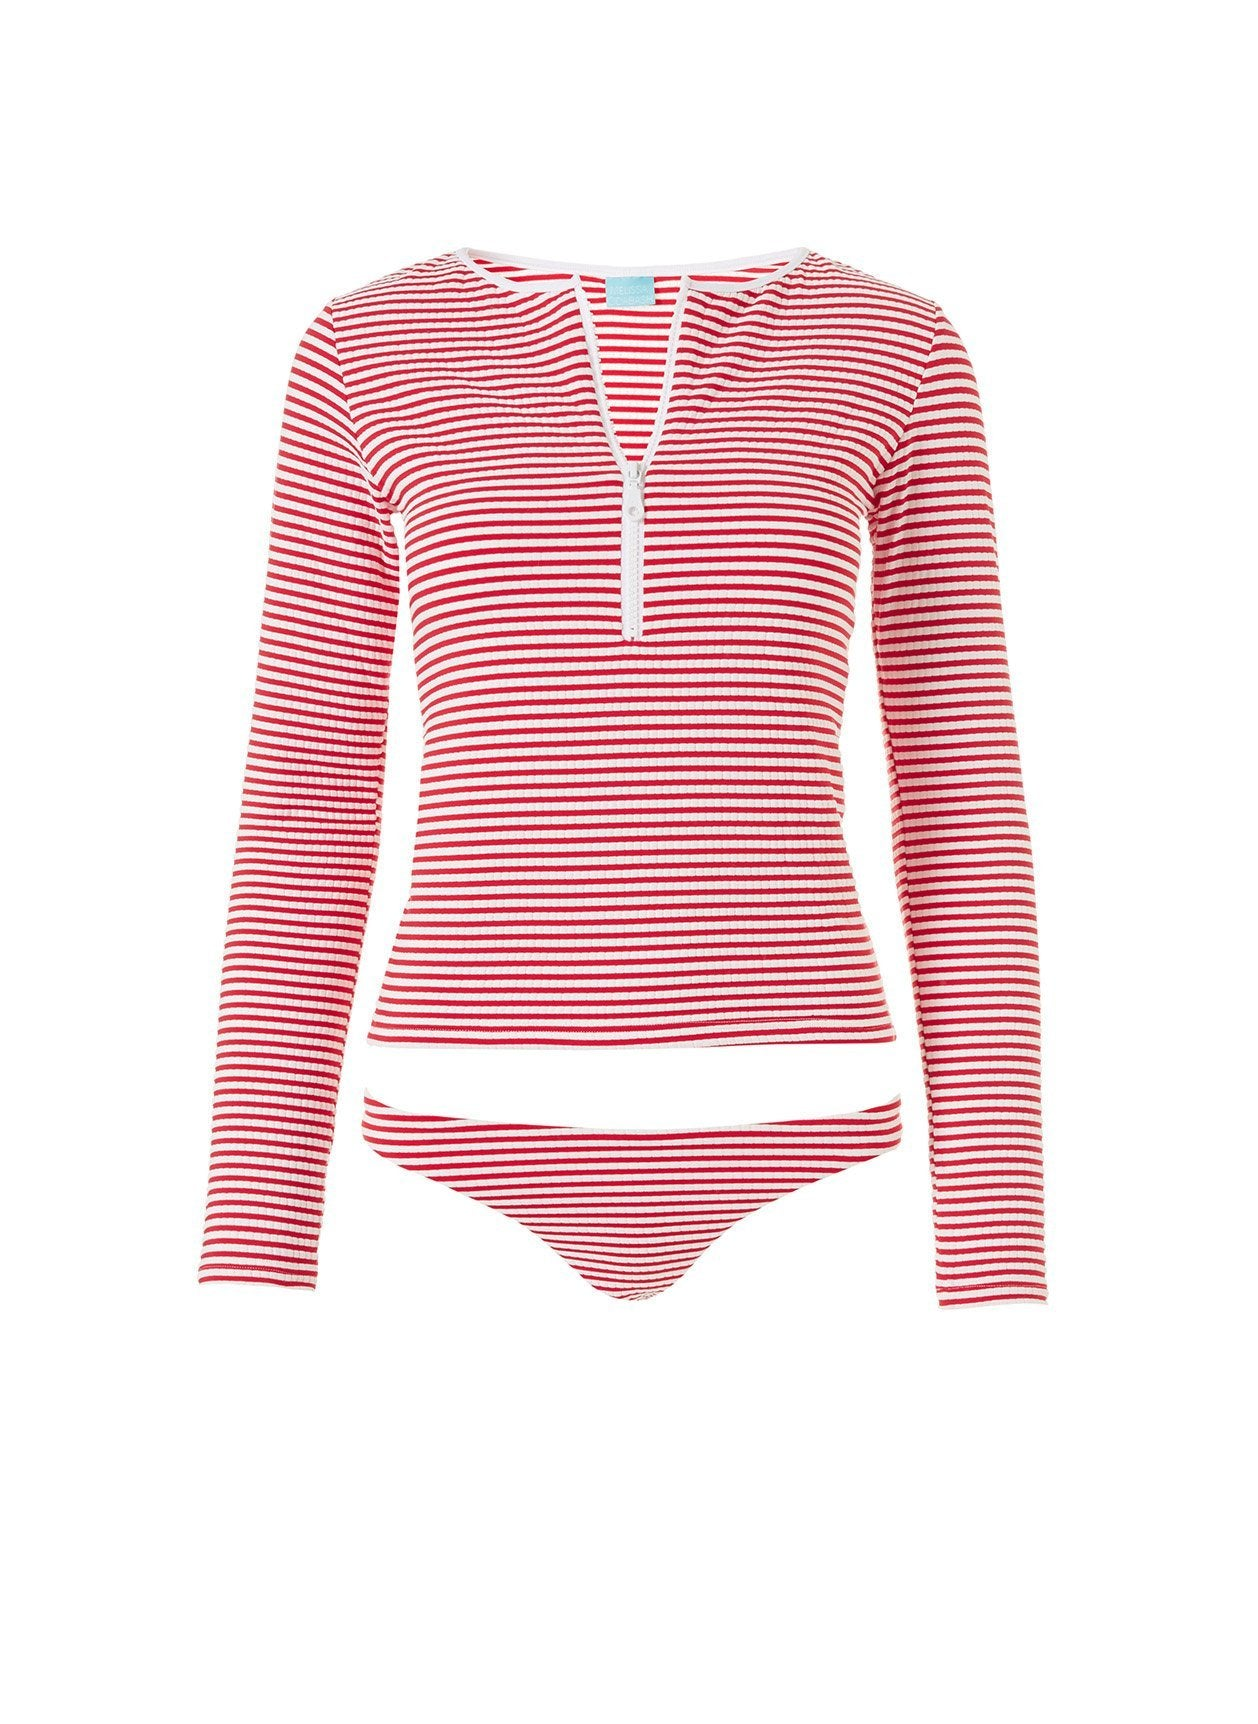 cali bikini nautical red